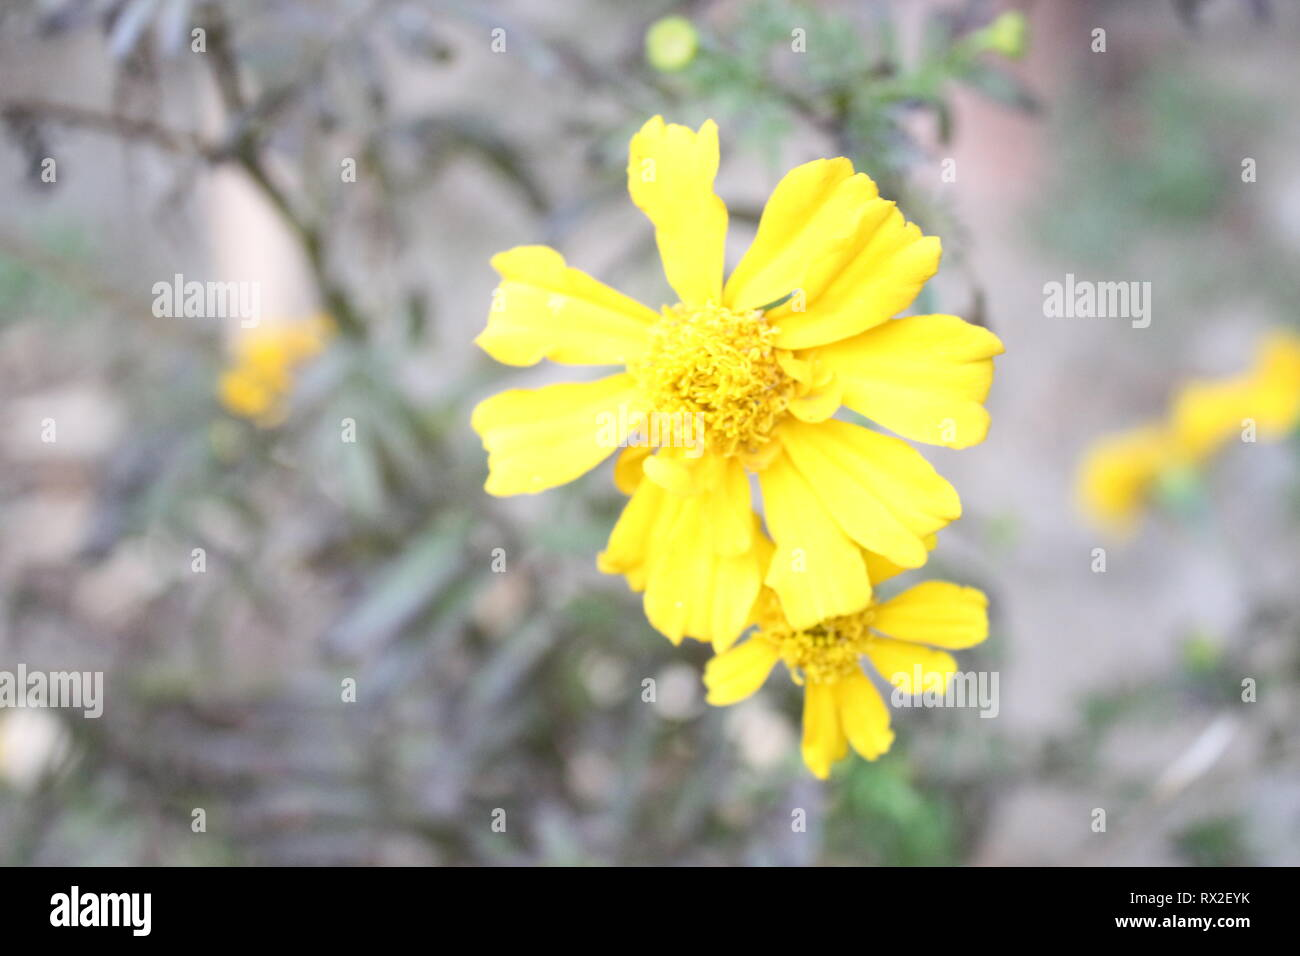 this is hill side flower. and this picture is shown the natural beauty of sikkim, this fascinating blooms is on every house in sikkim. - Stock Image